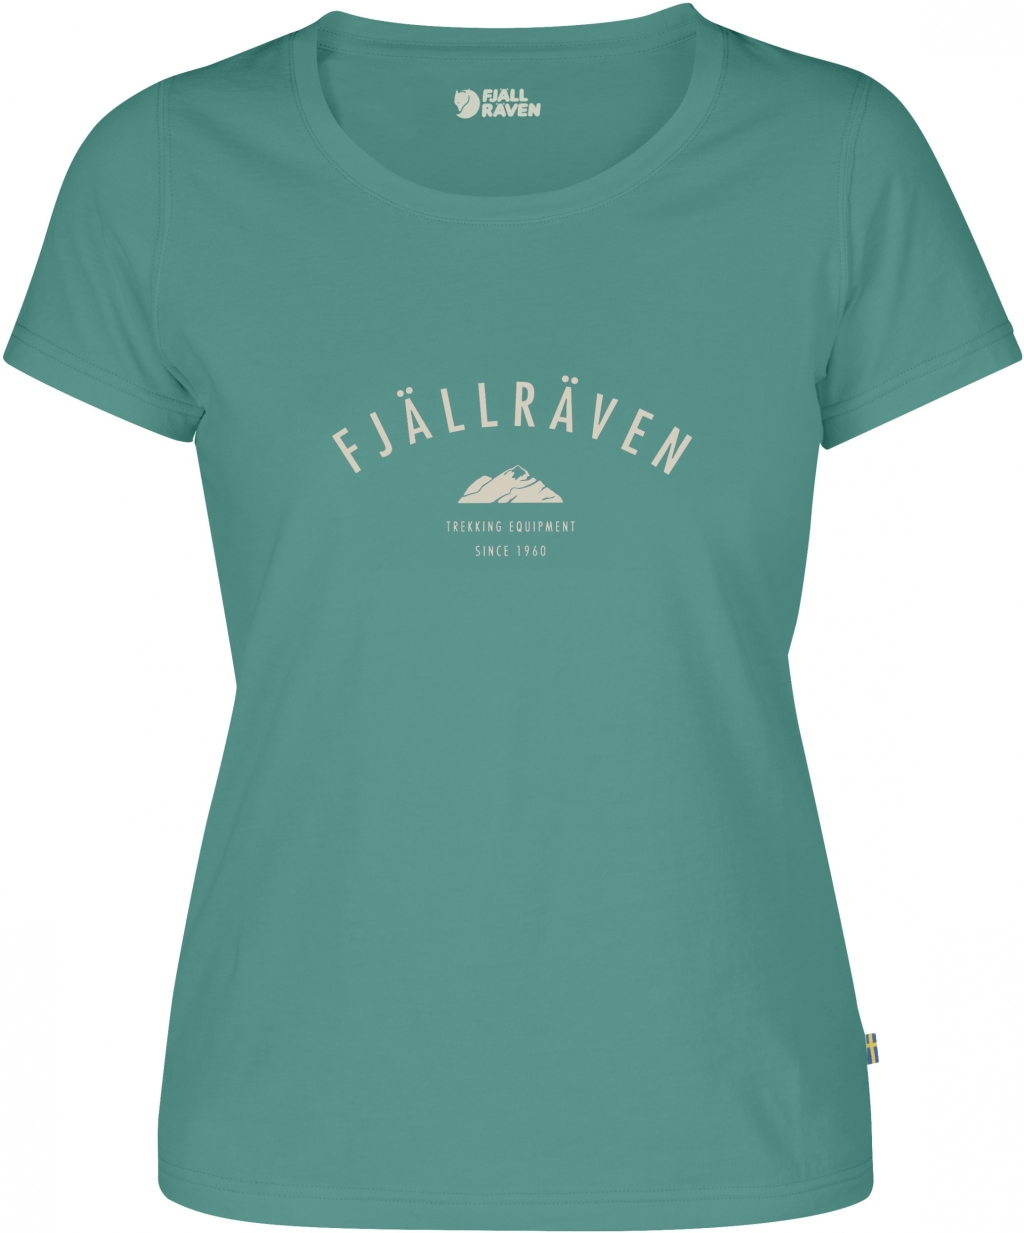 FjallRaven Trekking Equipment T-shirt W Copper Green-30